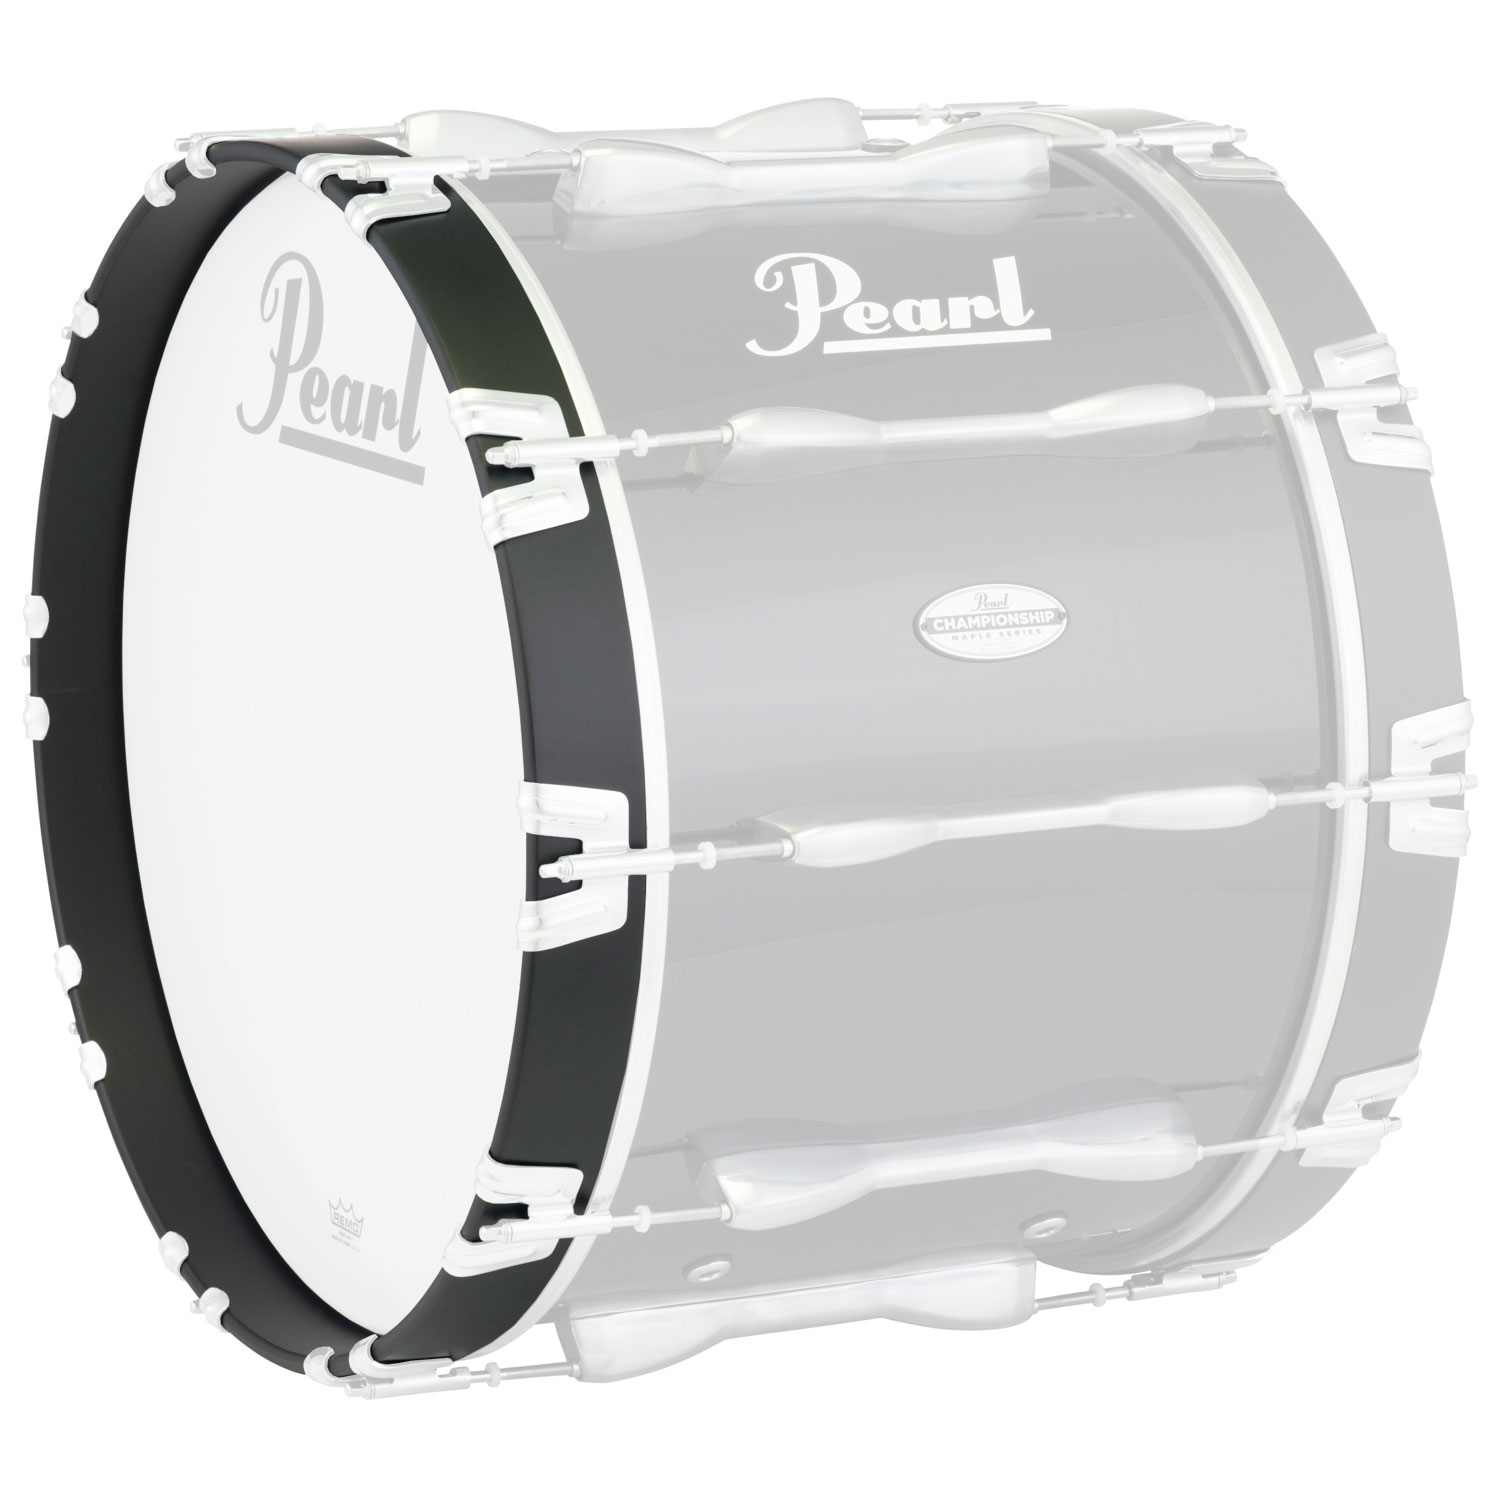 "Pearl 16"" Championship Bass Hoop, Gloss Black, 2"" Wide"